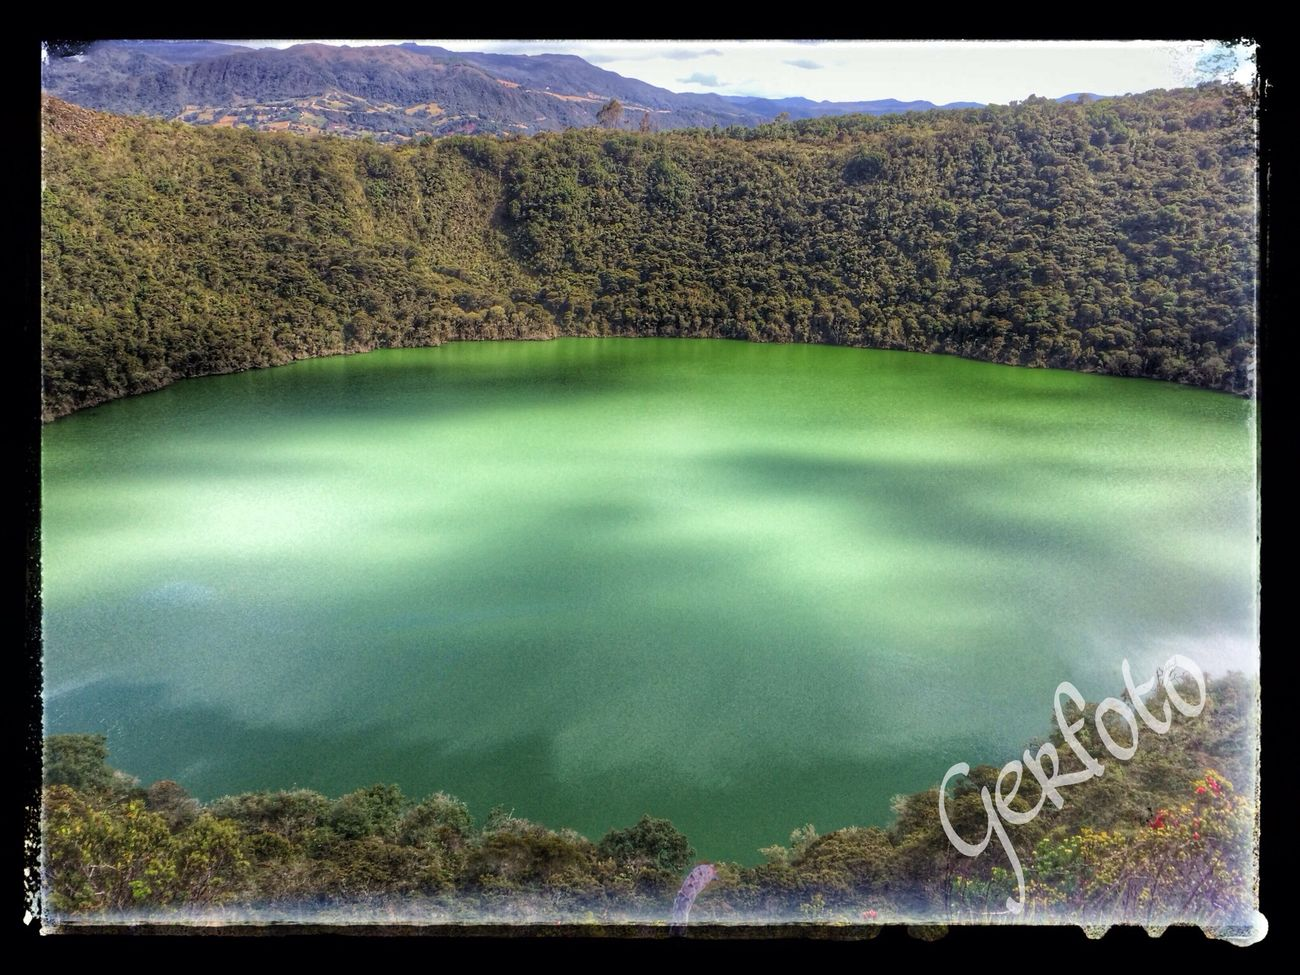 Sightseeing Guatavita lake. Legend of El Dorado Colombia Lake View